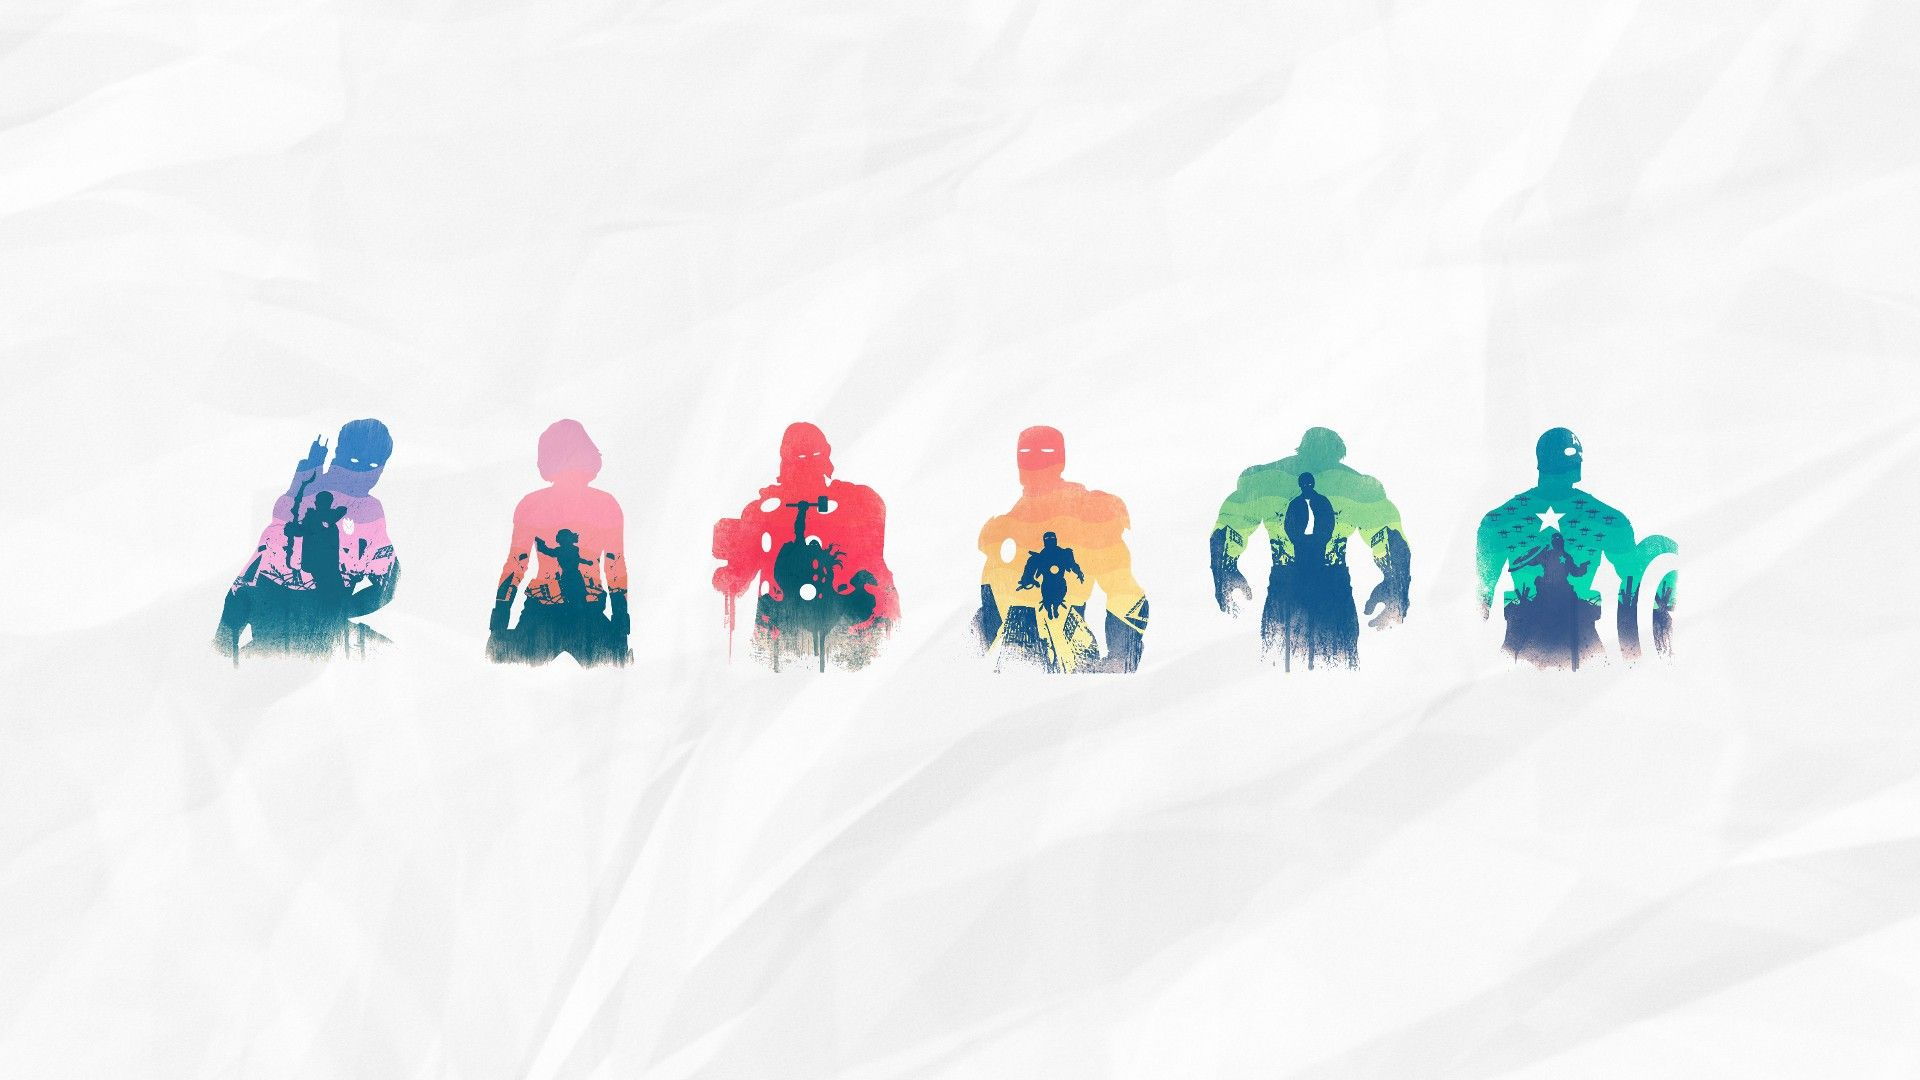 Minimalist Wallpaper Dump 400 Images Imgur Marvel Wallpaper Avengers Wallpaper Marvel Background